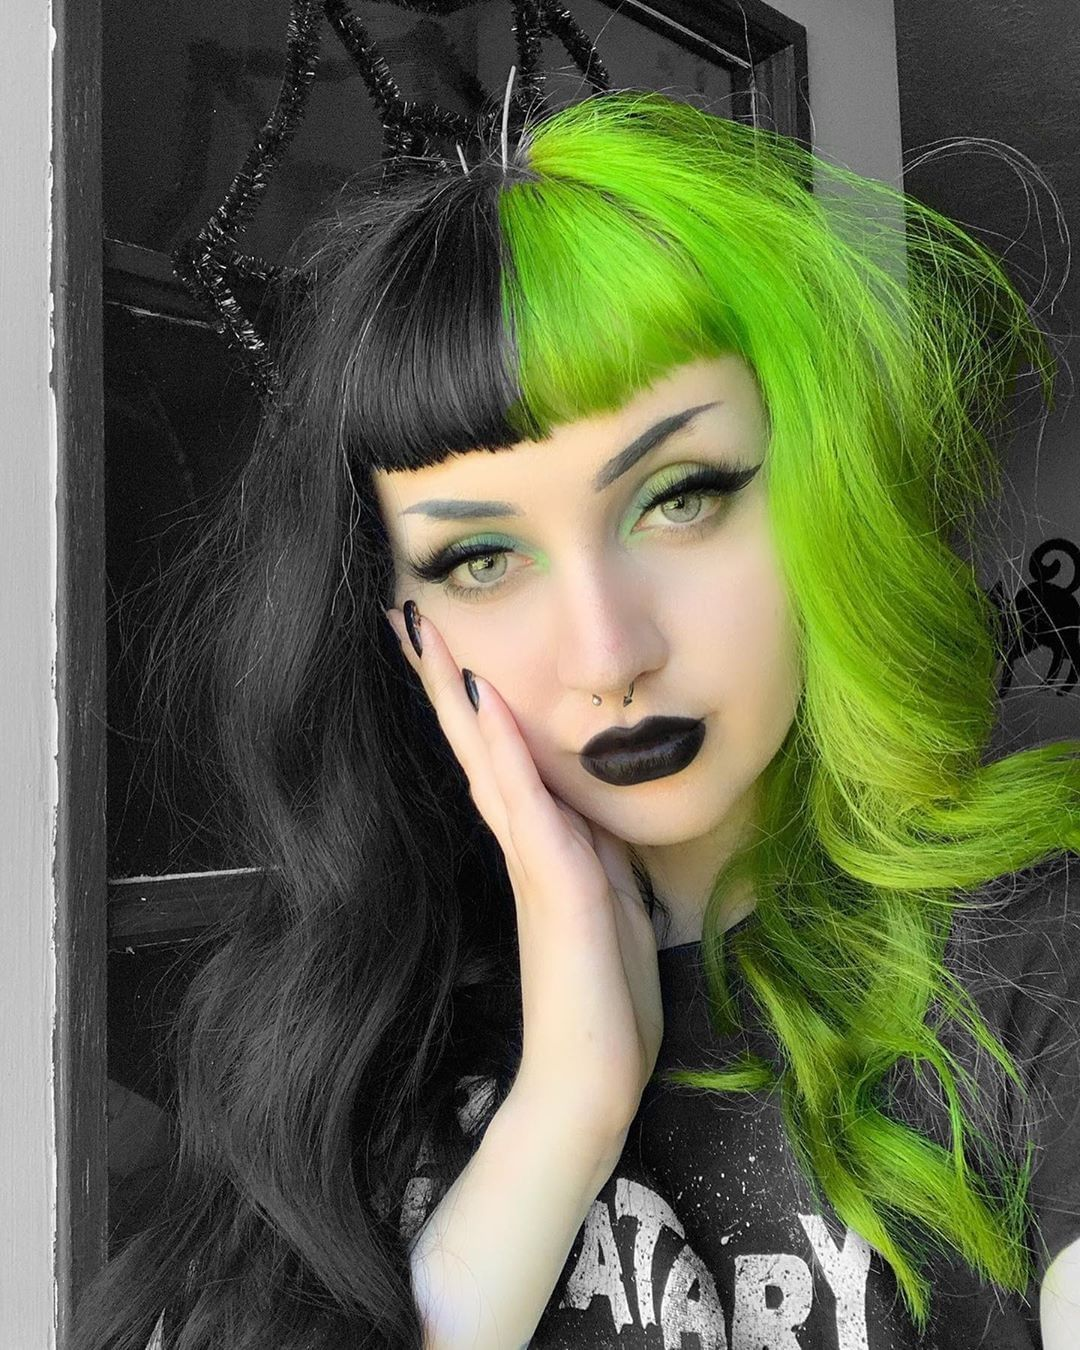 Mega Babe Horrorhailey In Our Aurora Green Try Our Split Pack In Aurora Green For A Similar Look In 2020 Split Dyed Hair Neon Green Hair Half Colored Hair